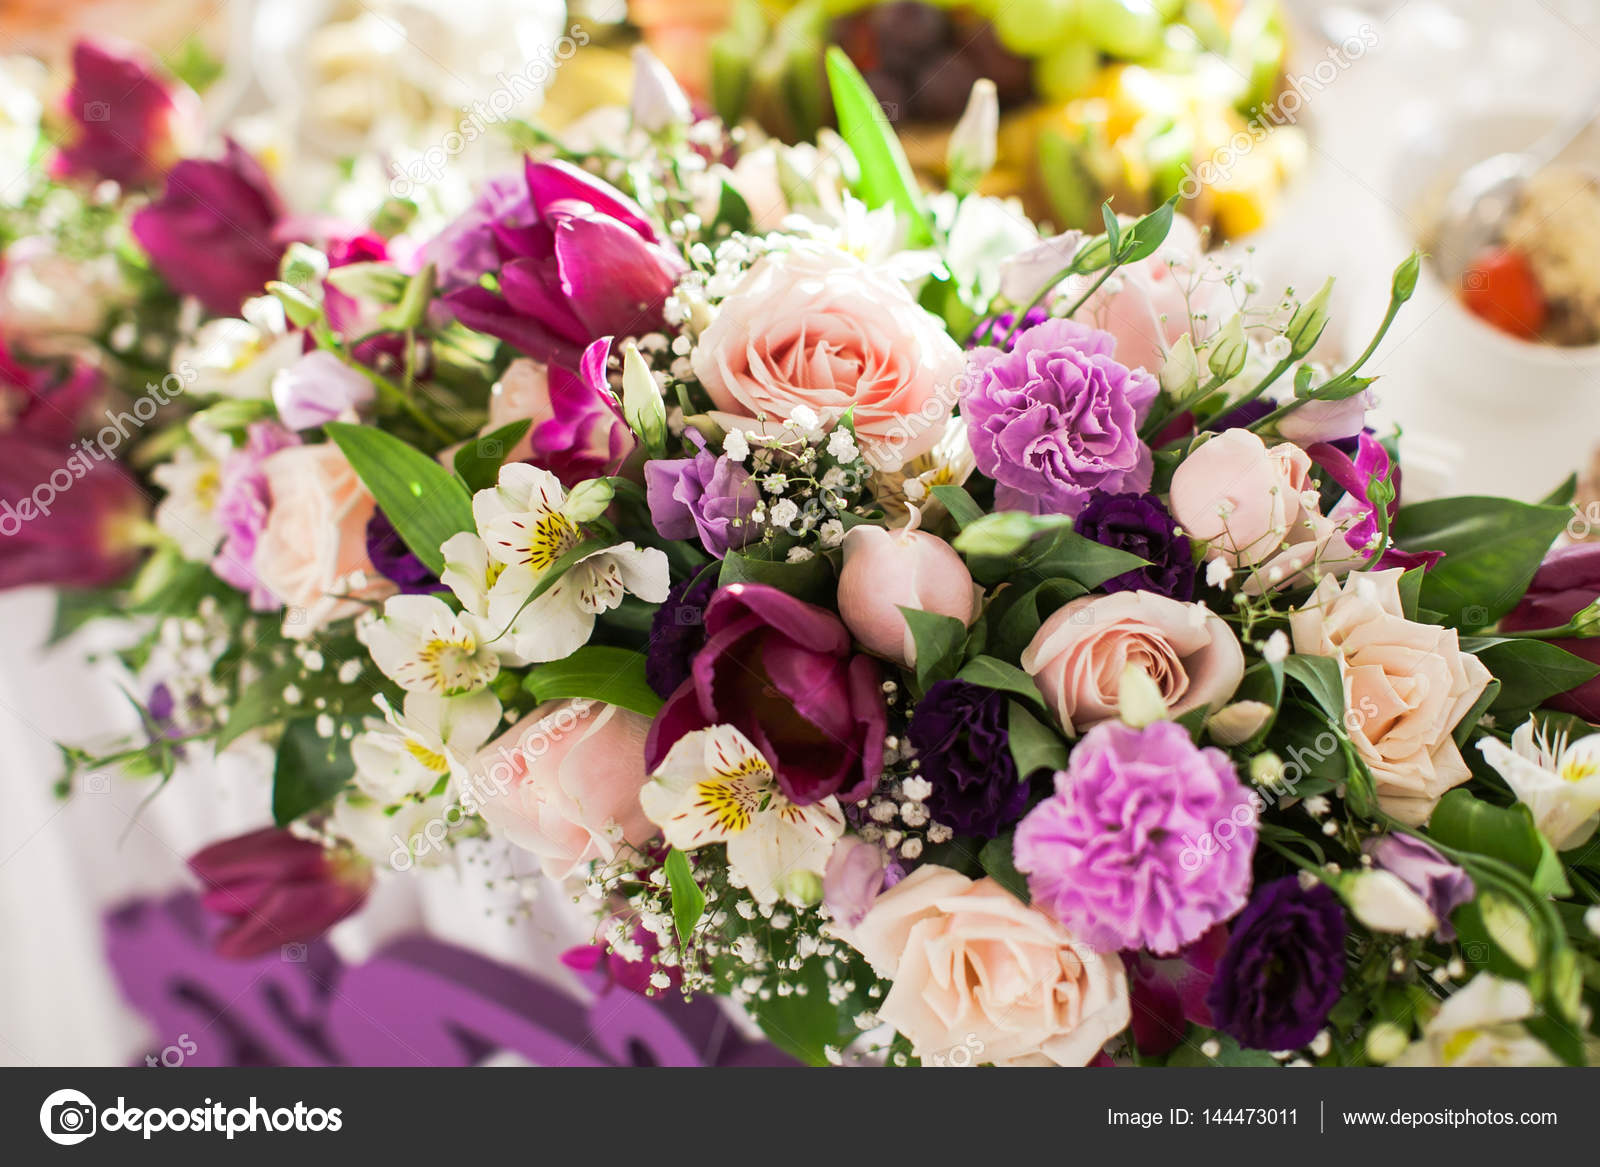 Flower Composition On A Table Wedding Decor Beautiful Bouquet From